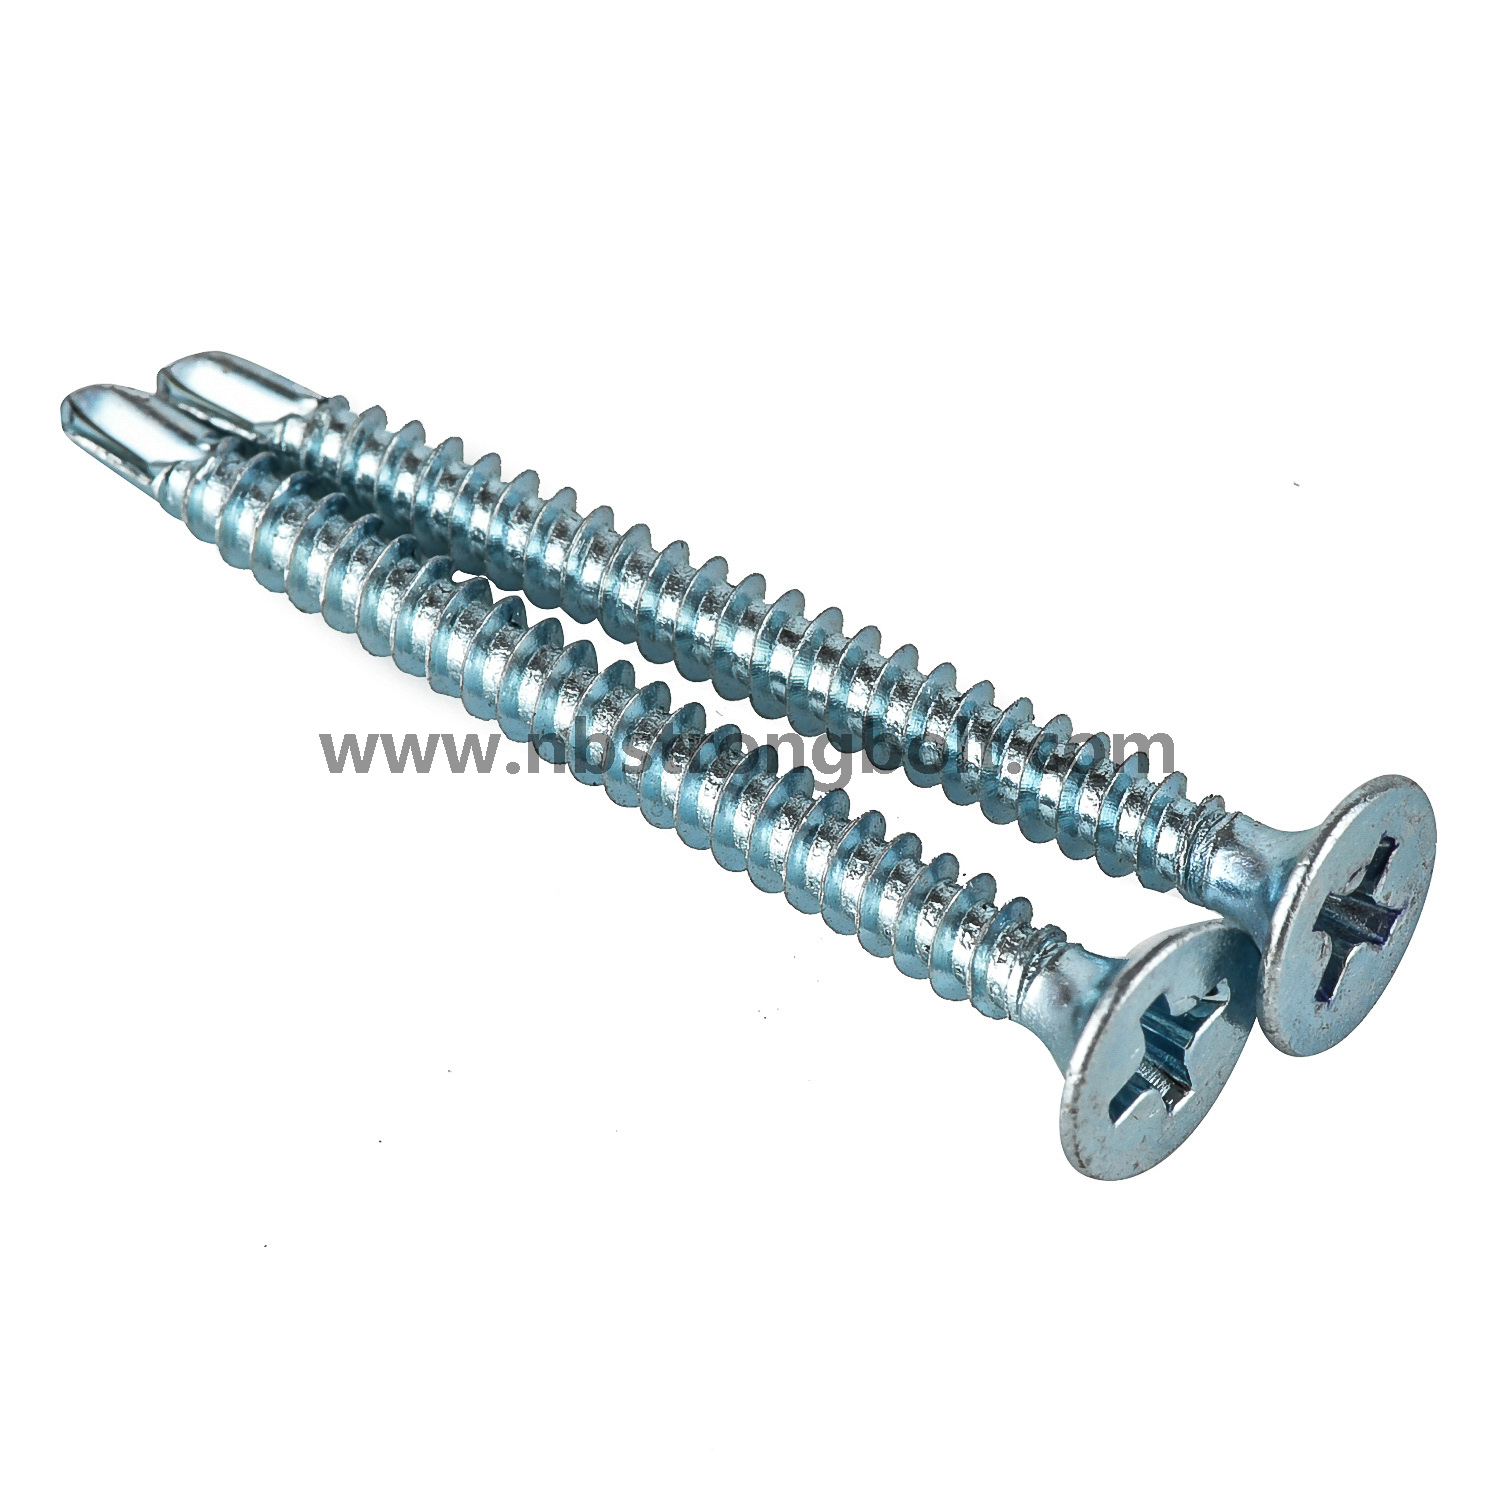 "C1022 Phil Drive Bugle Head Self Drilling Screws Bsd #2 Drill Zinc Plated #6X1.1/4""/China self drilling screw factory,China screw factory"